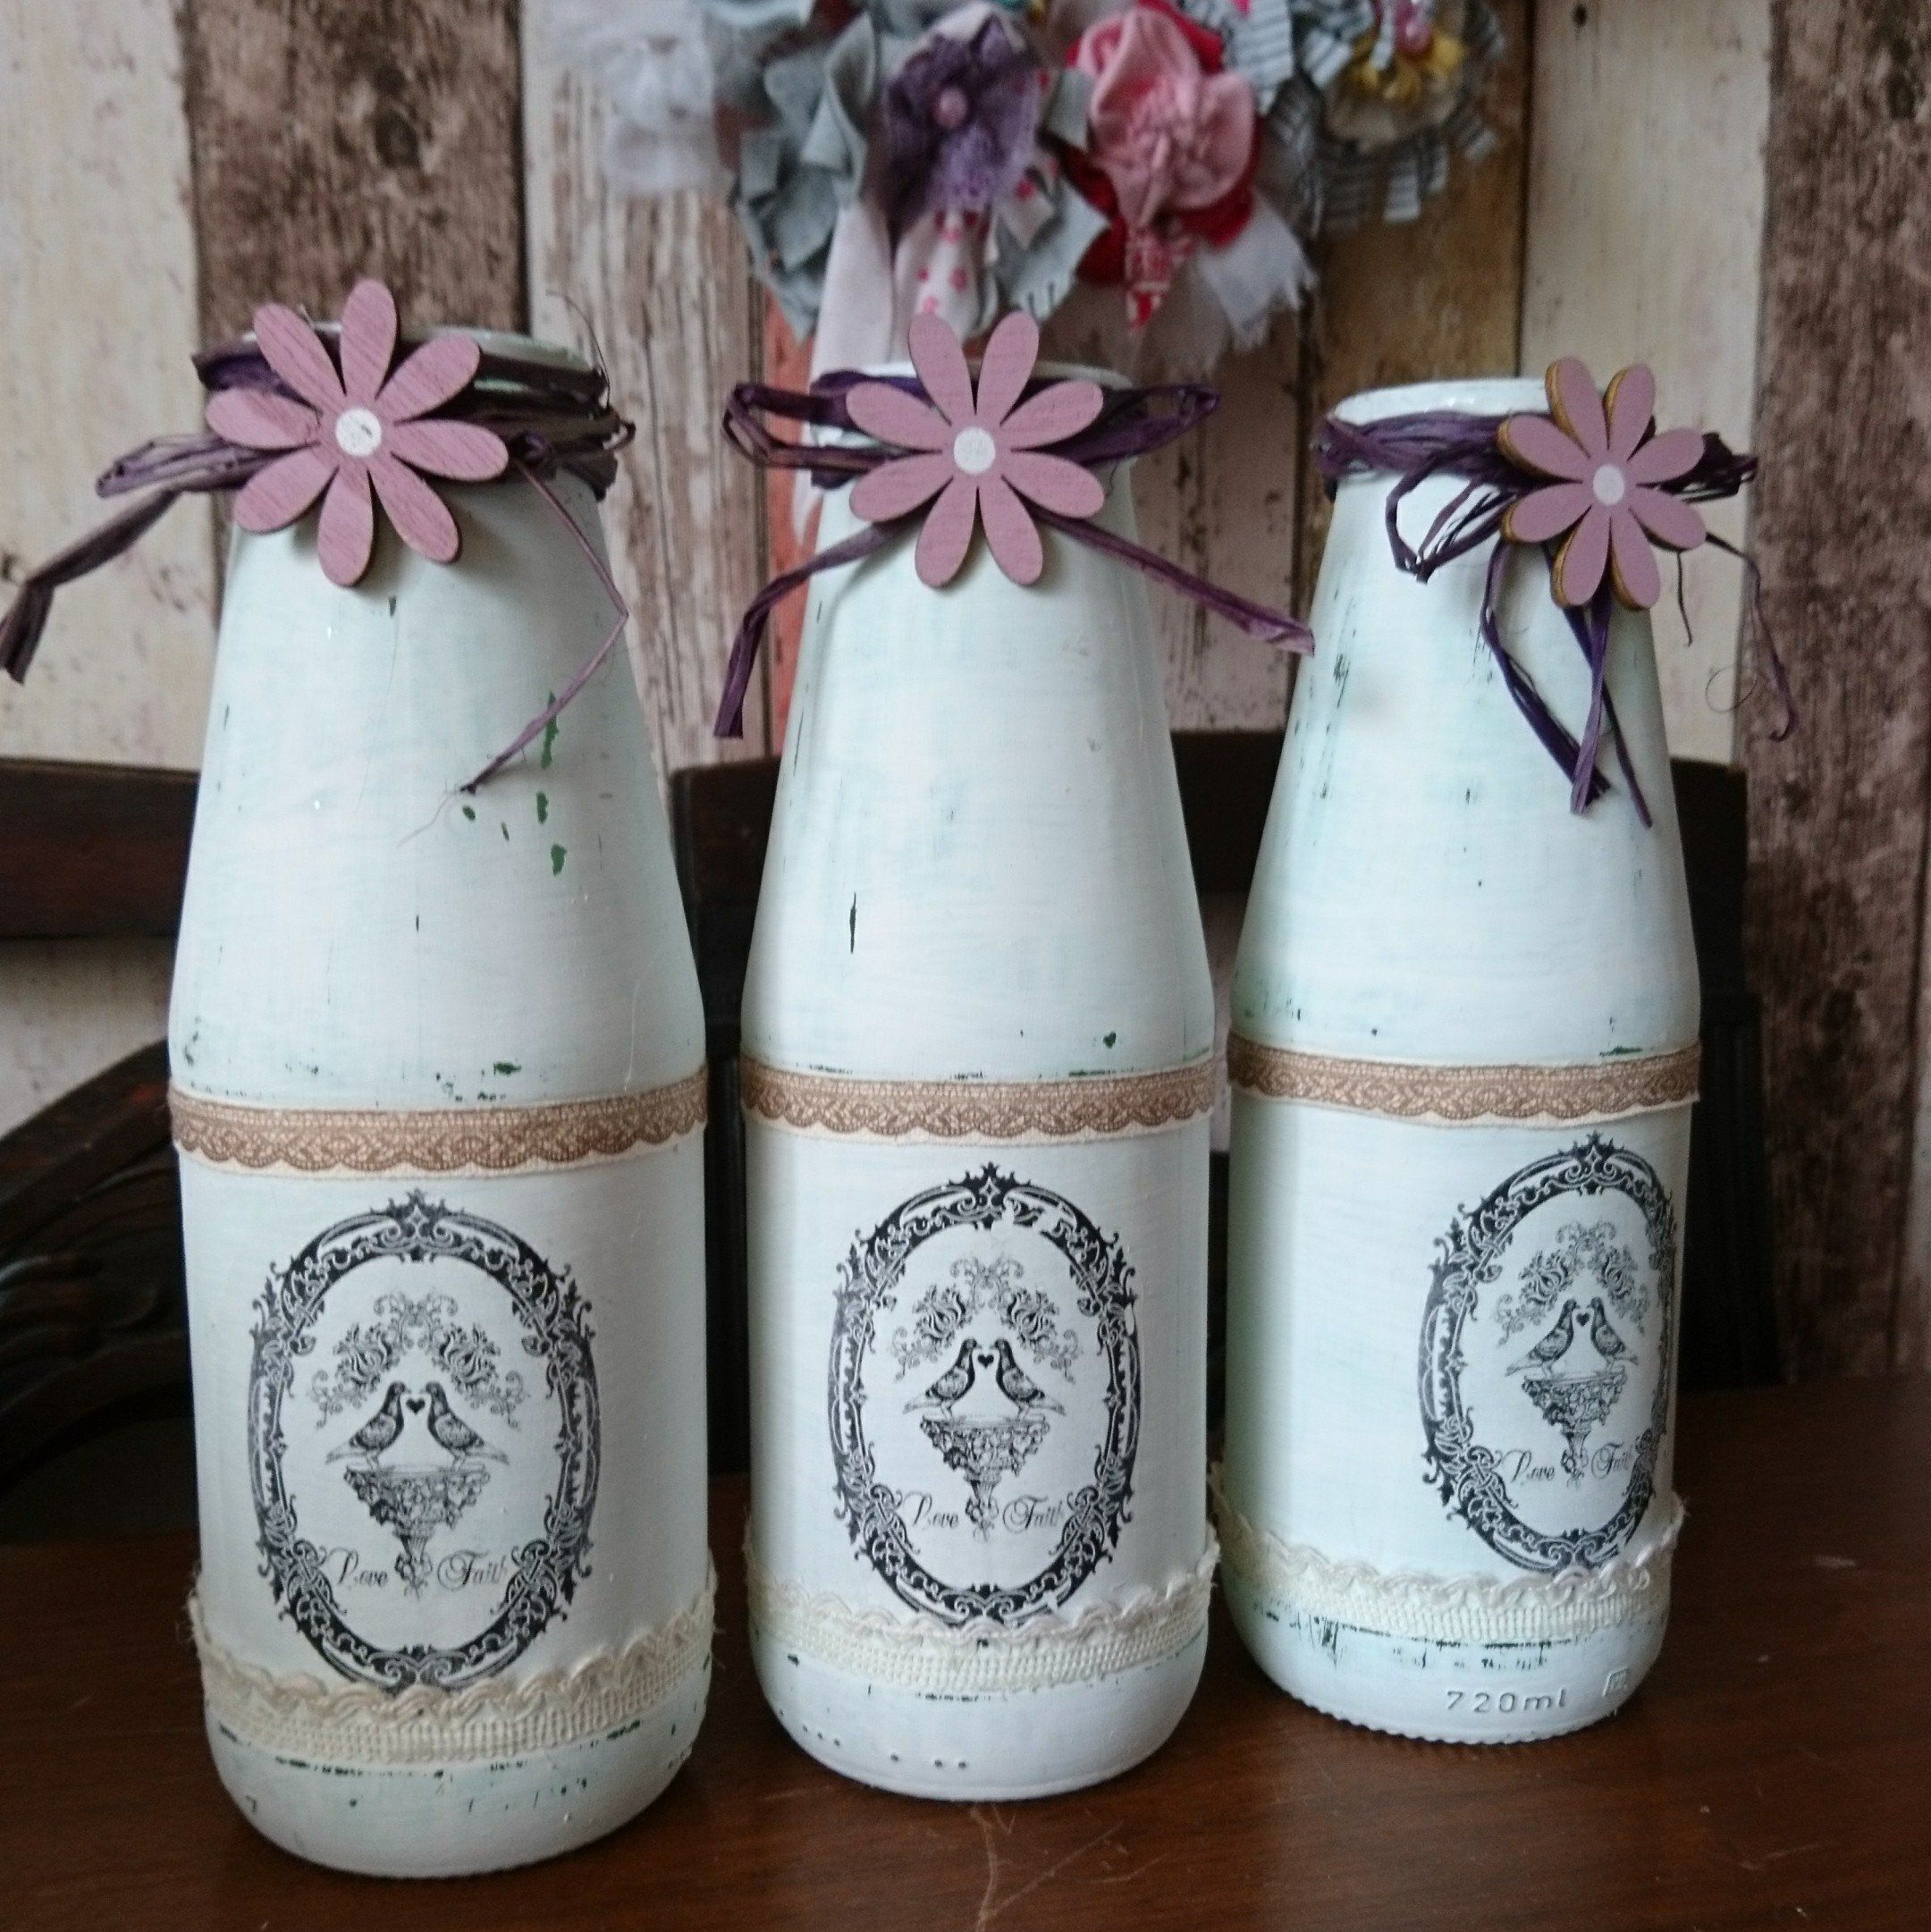 Milchflaschen Deko Set 3x Shabby Chic Bottles Deco Vase Vintage Romance Table Décor